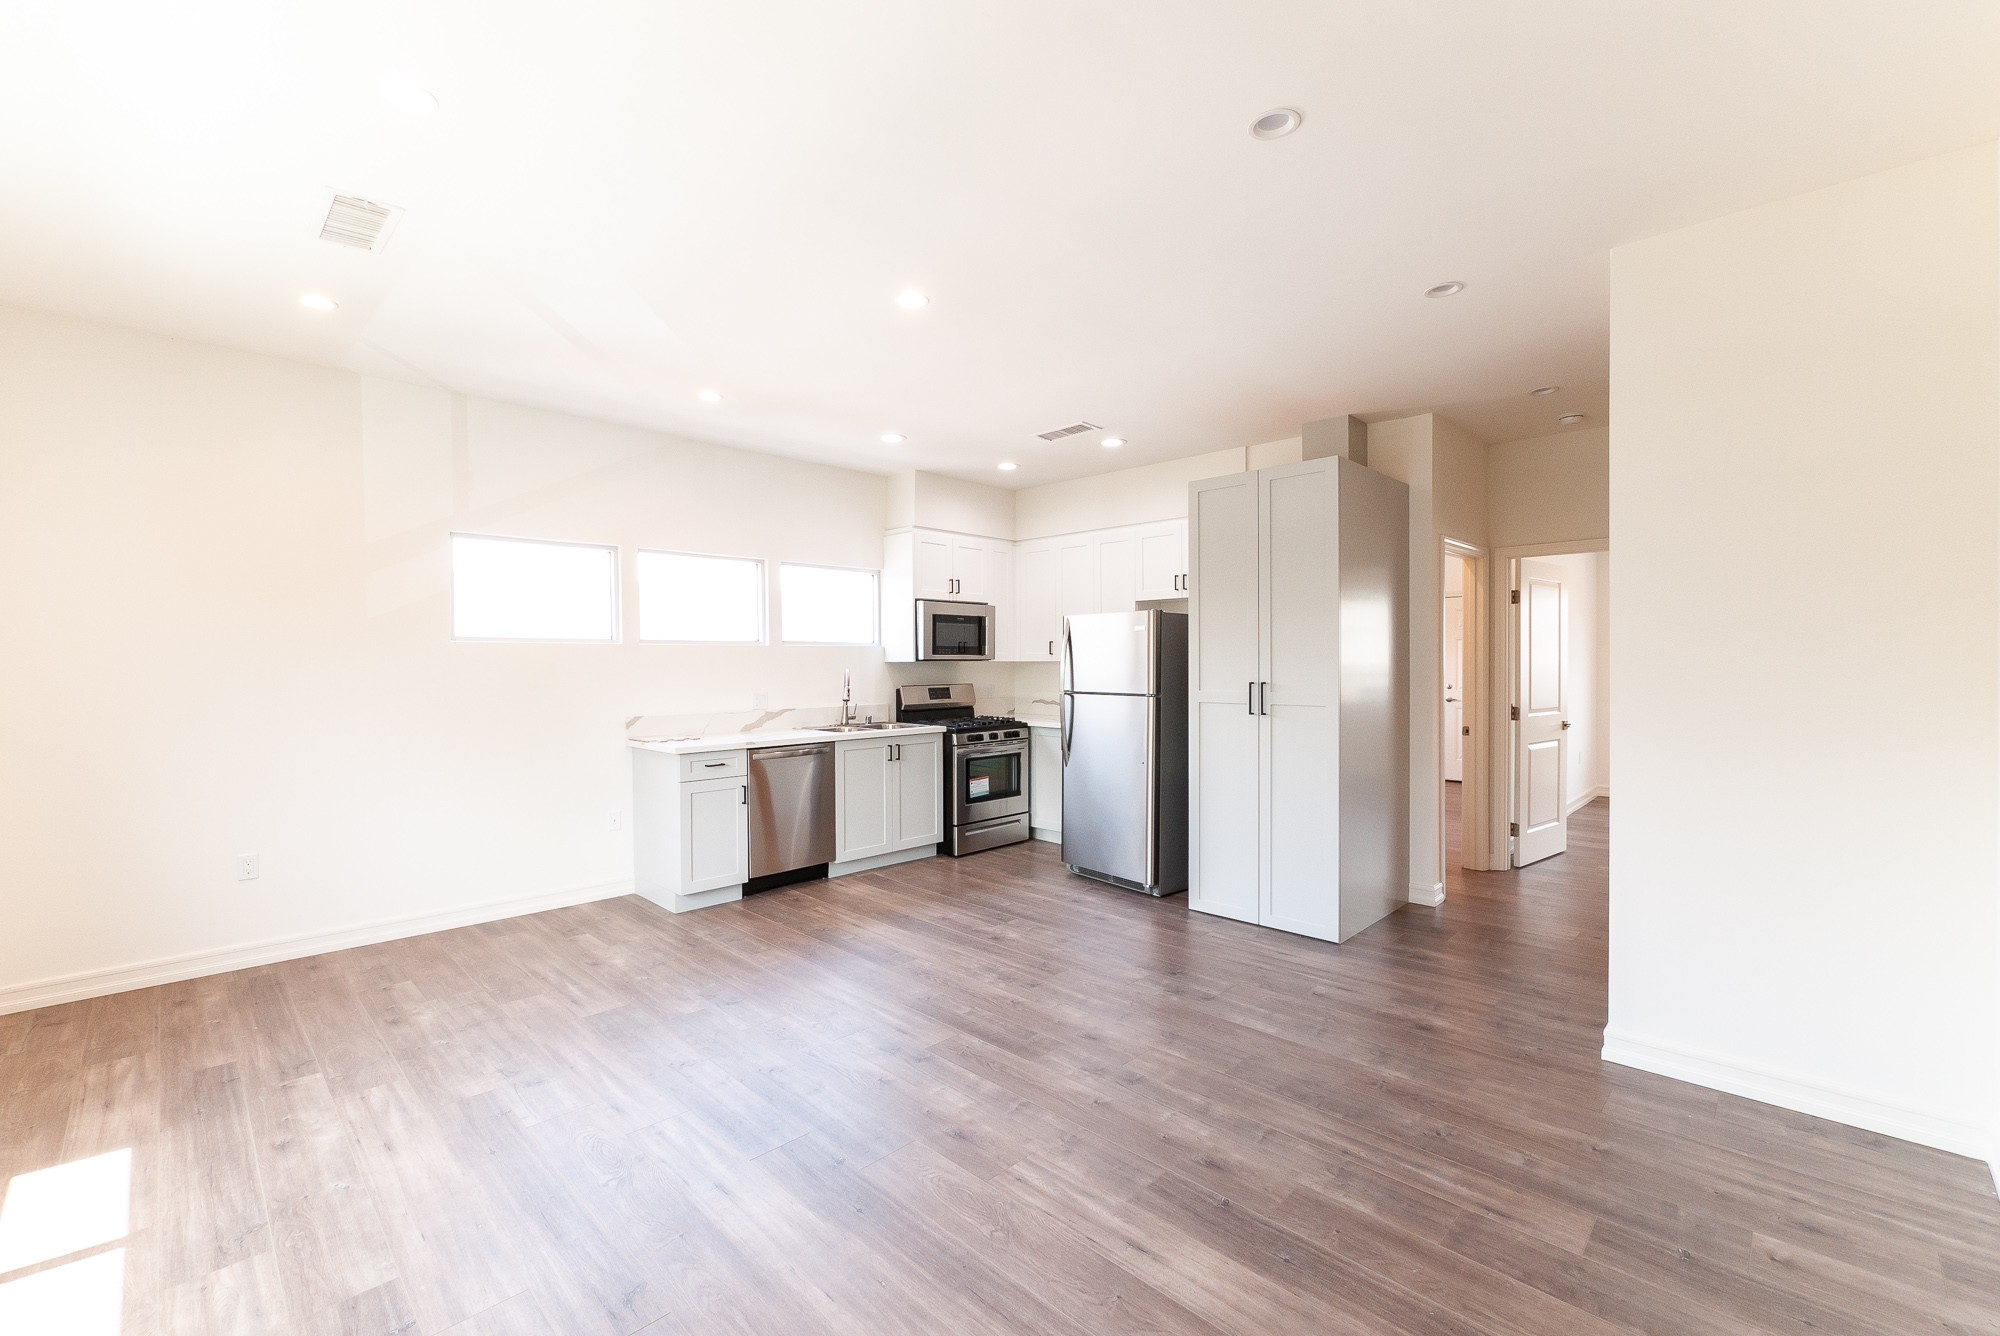 ONE MONTH FREE RENT! All Brand New!! New Build- W/D Hookups - Dishwasher-AC-Great Location!